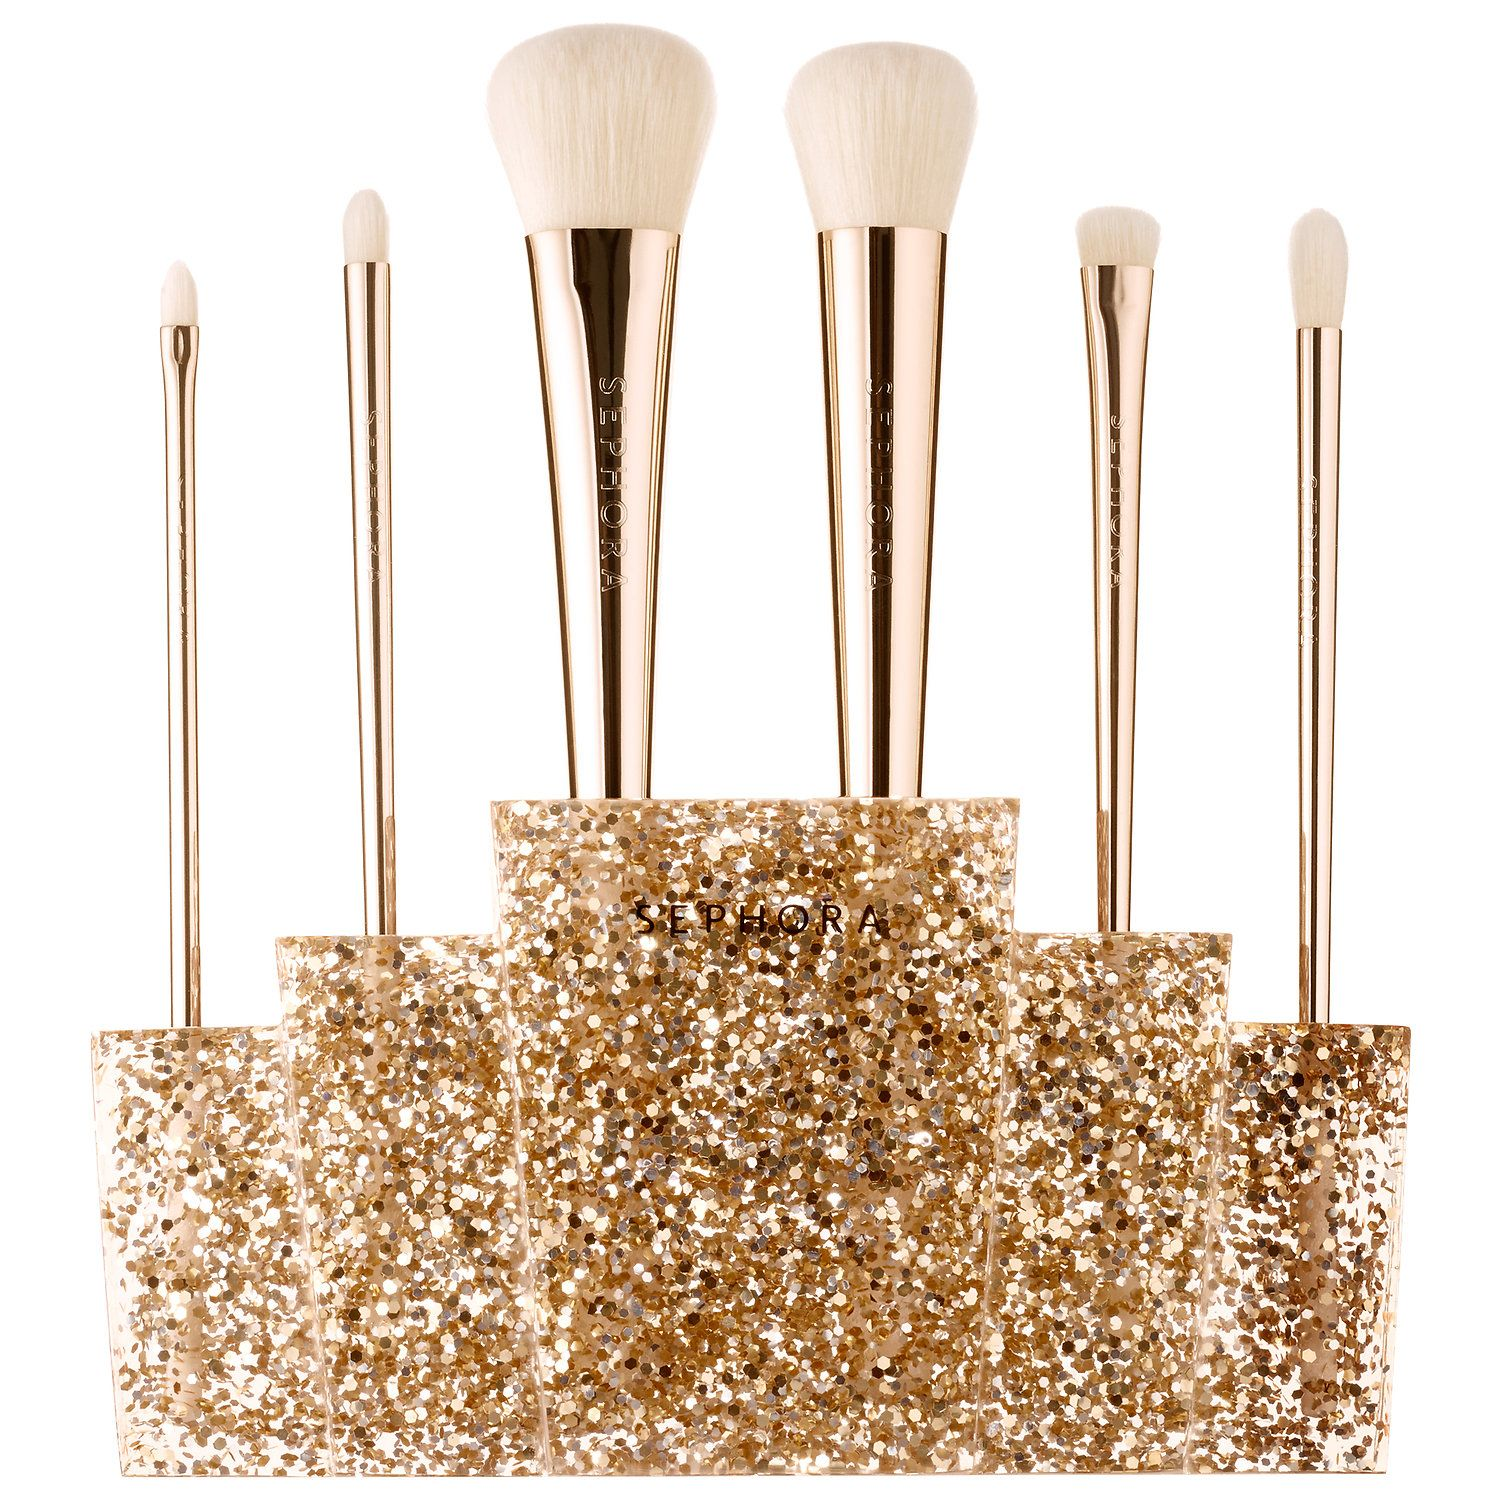 Shop SEPHORA COLLECTION's Glitter Happy Brush Set at